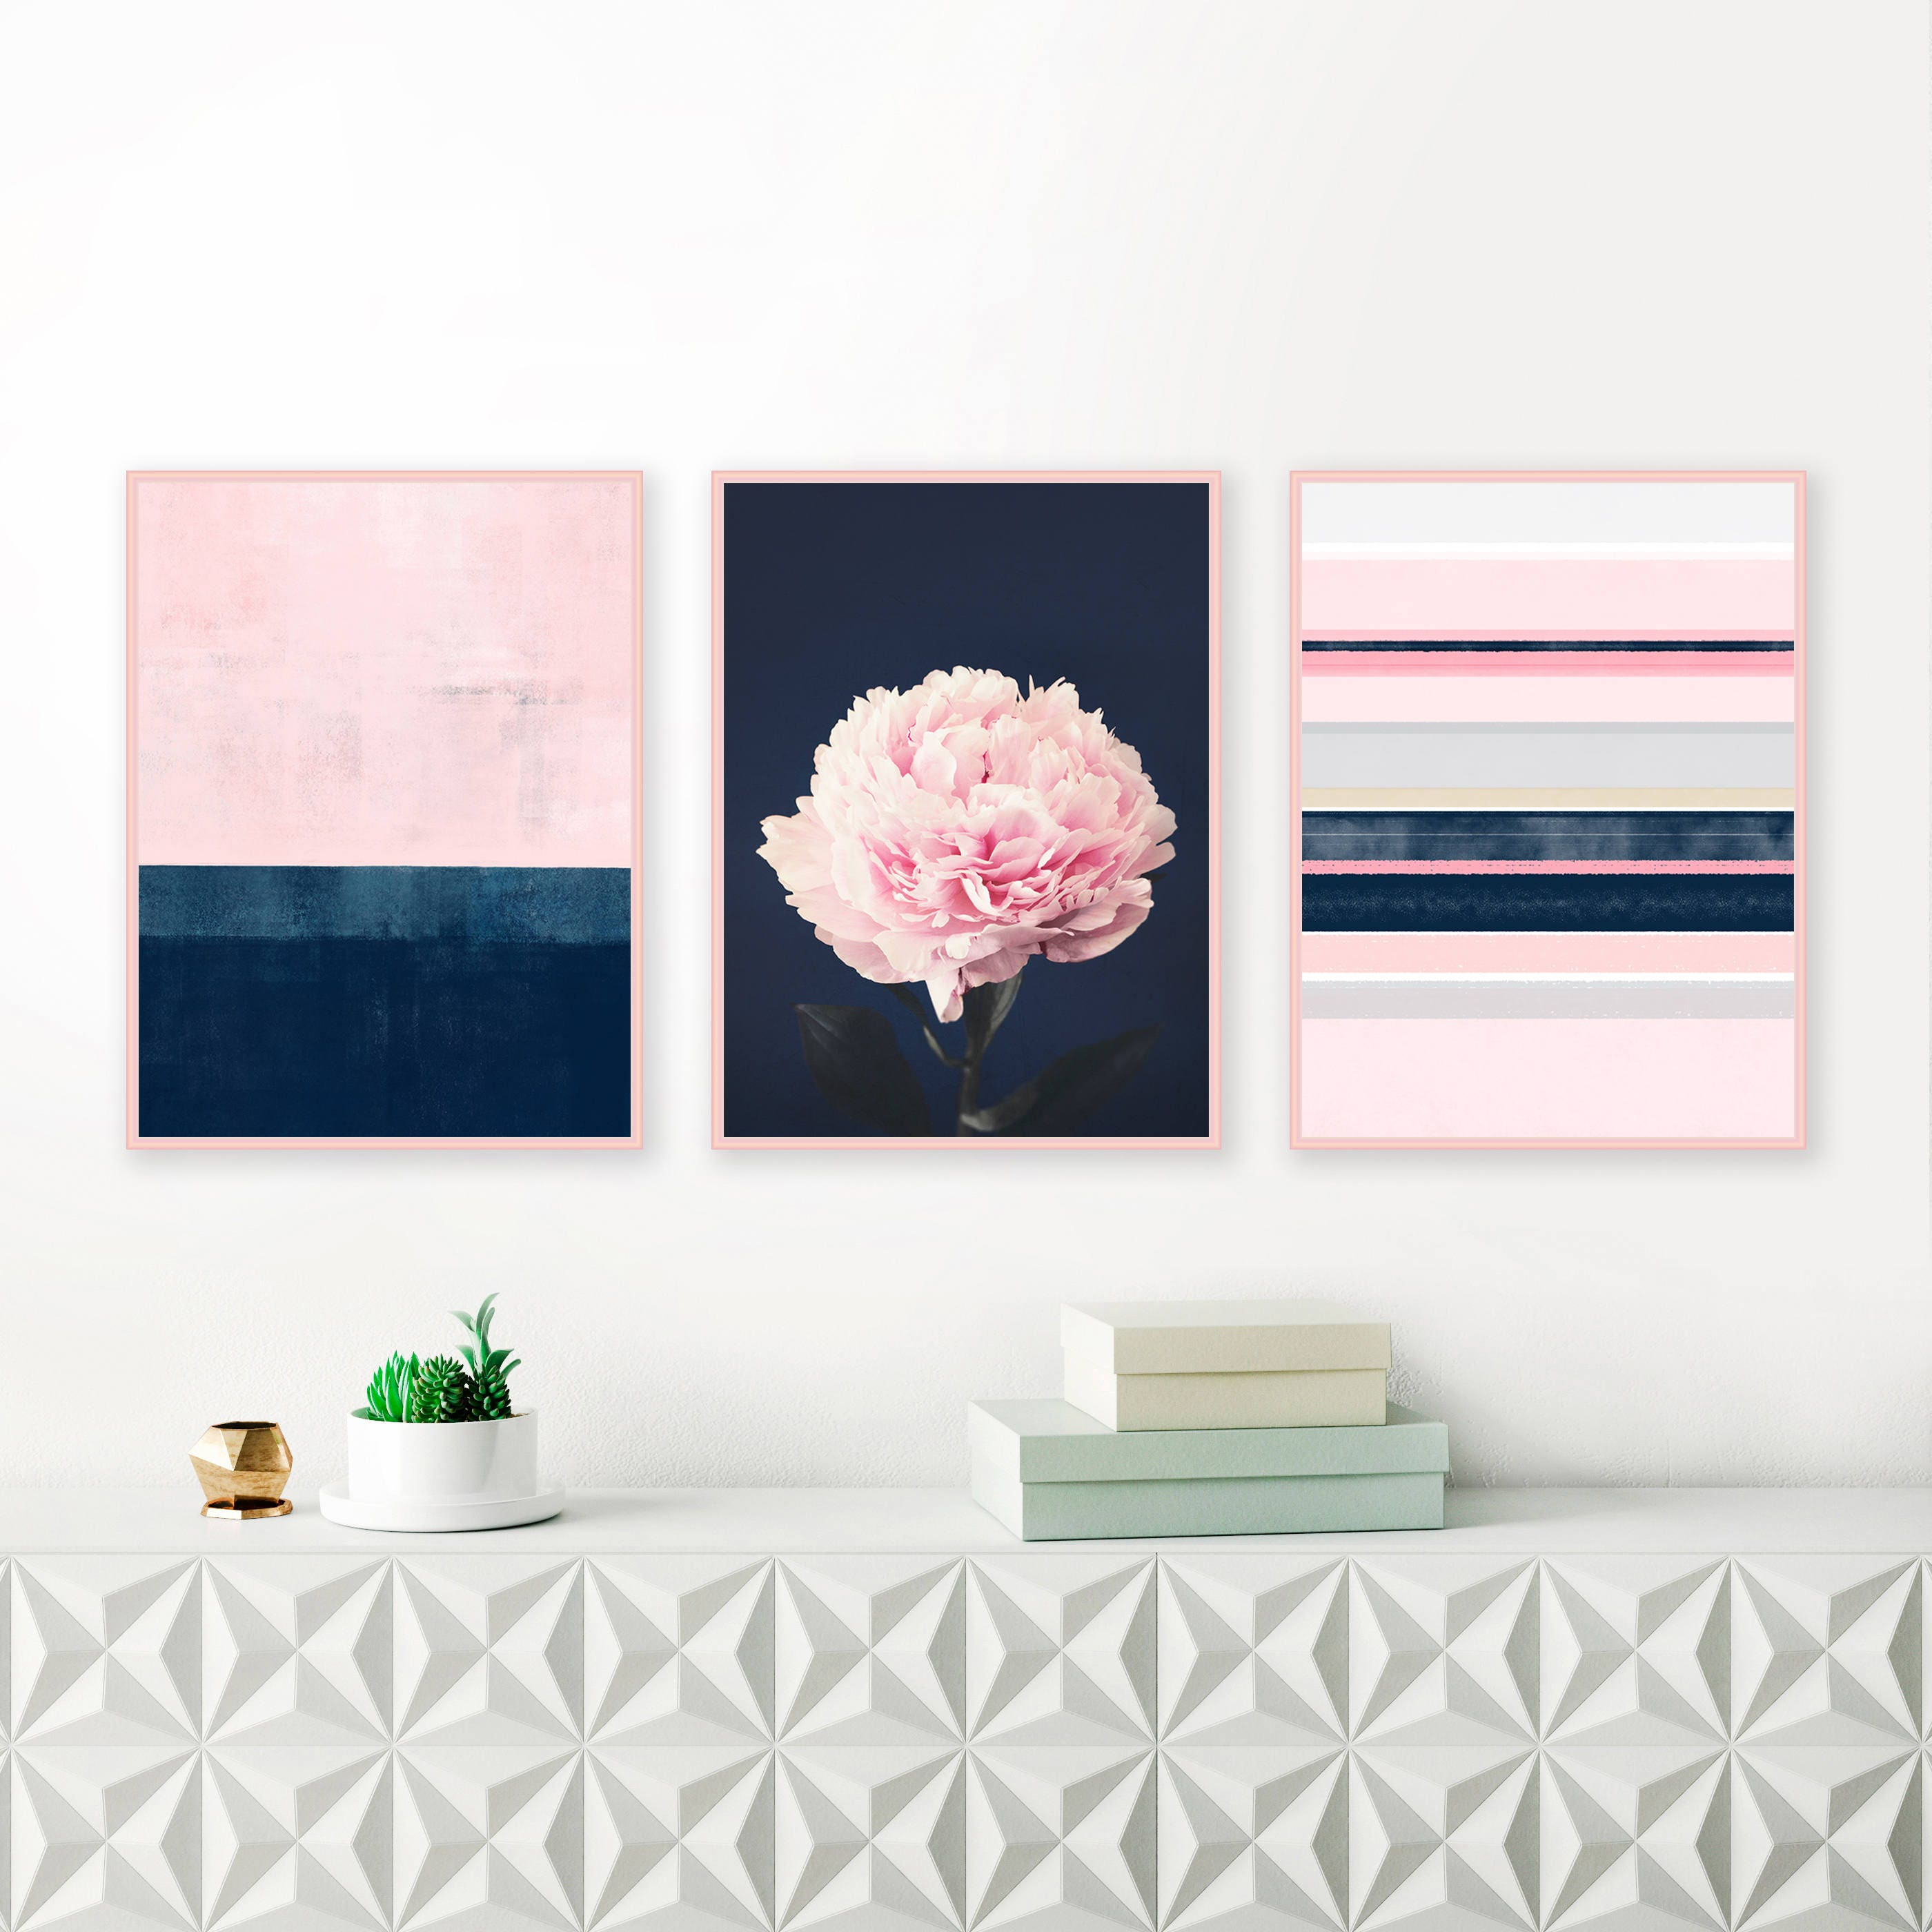 Pink and navy gallery wall art set of 3 prints modern prints abstract art peony print bedroom art living room art wall